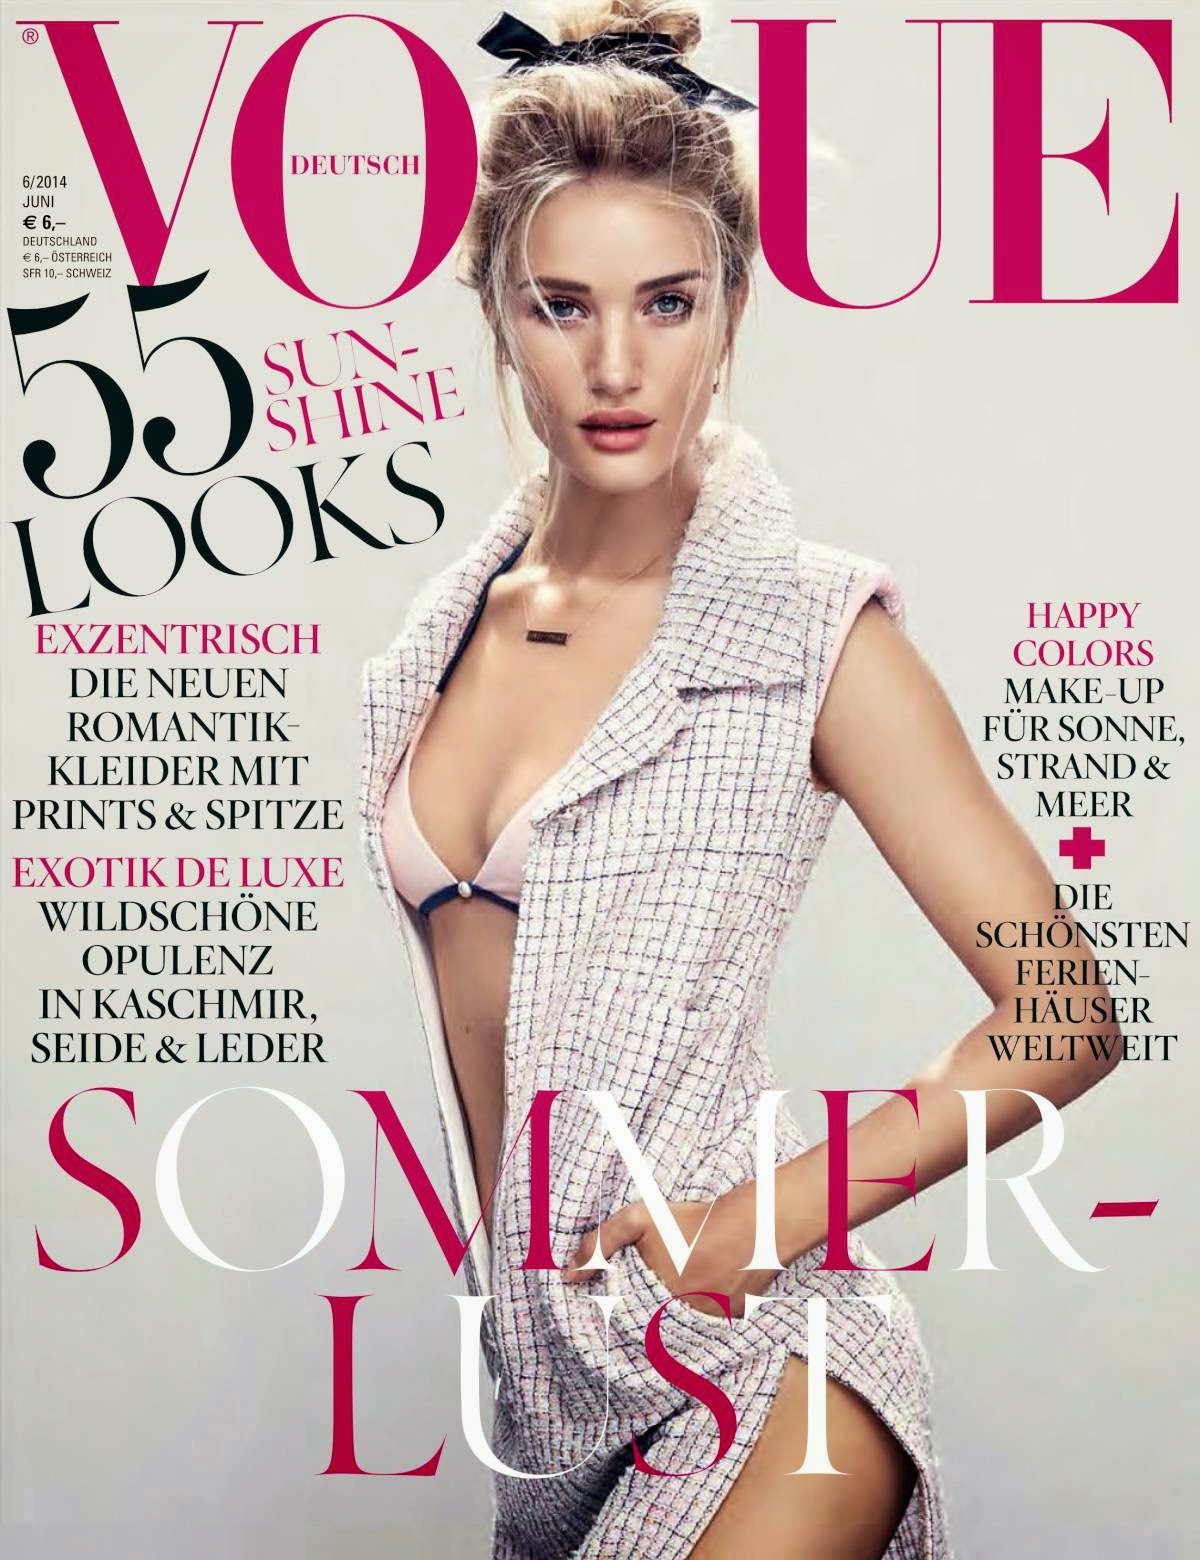 Rosie Huntington Whiteley - Hot Photoshoot for Vogue Germany Magazine (June 2014)